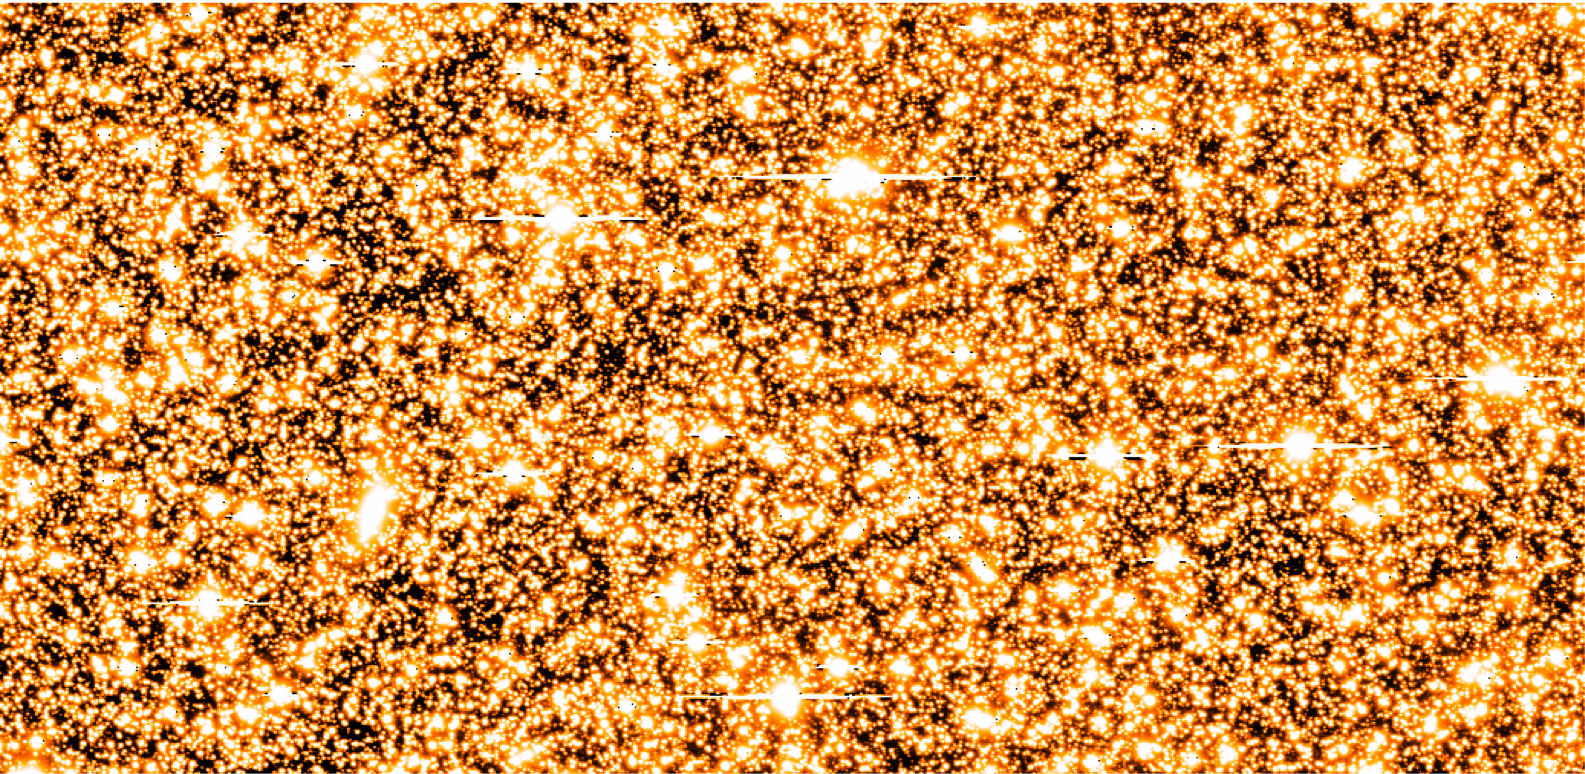 A small subsection of a single Magellan survey image